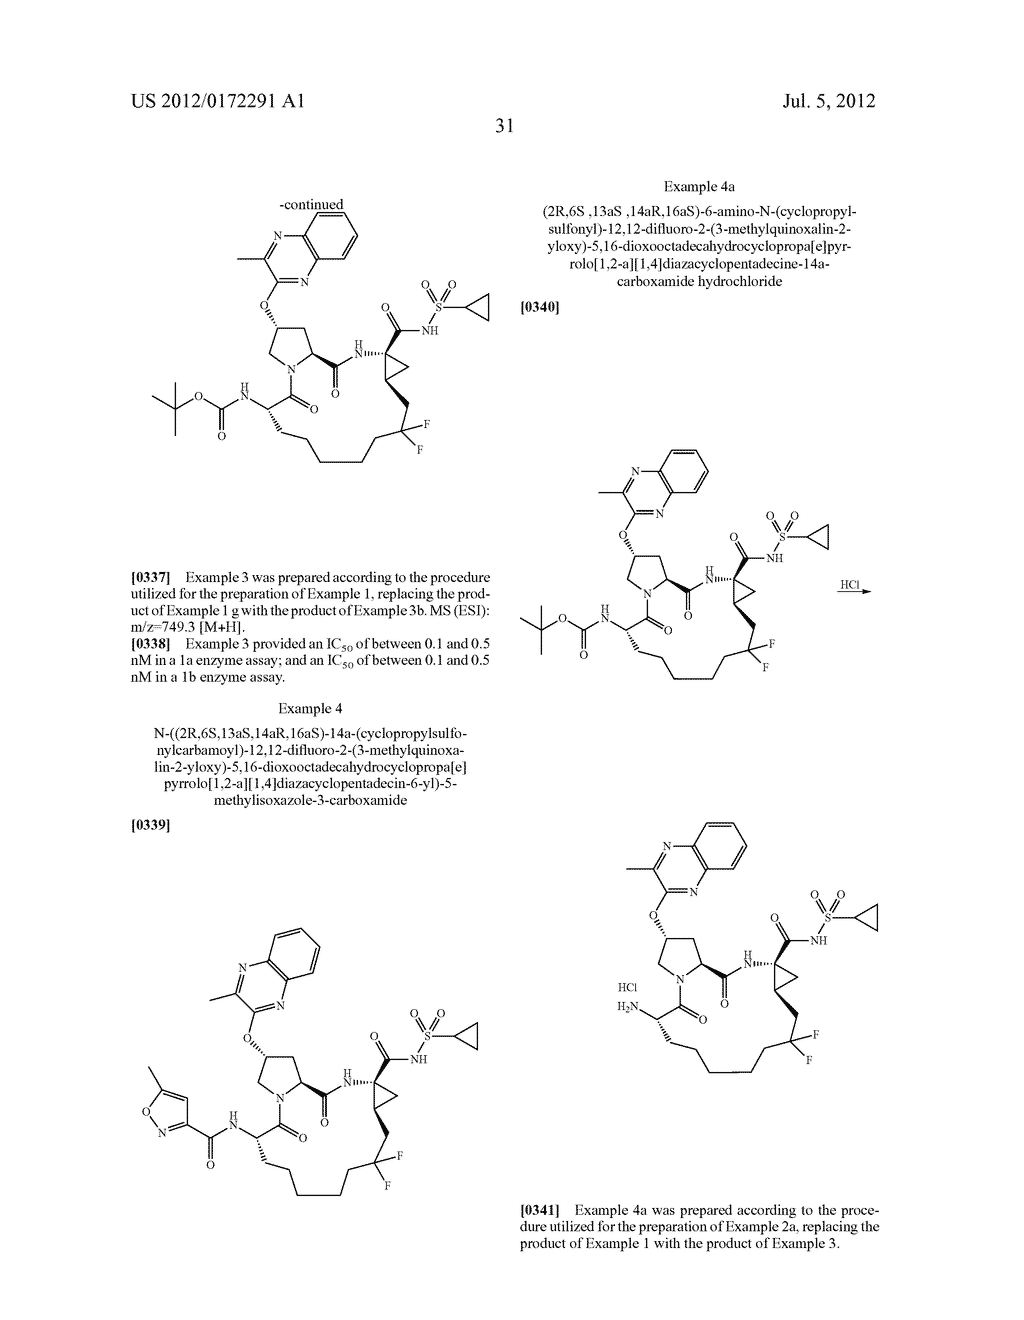 MACROCYCLIC HEPATITIS C SERINE PROTEASE INHIBITORS - diagram, schematic, and image 32